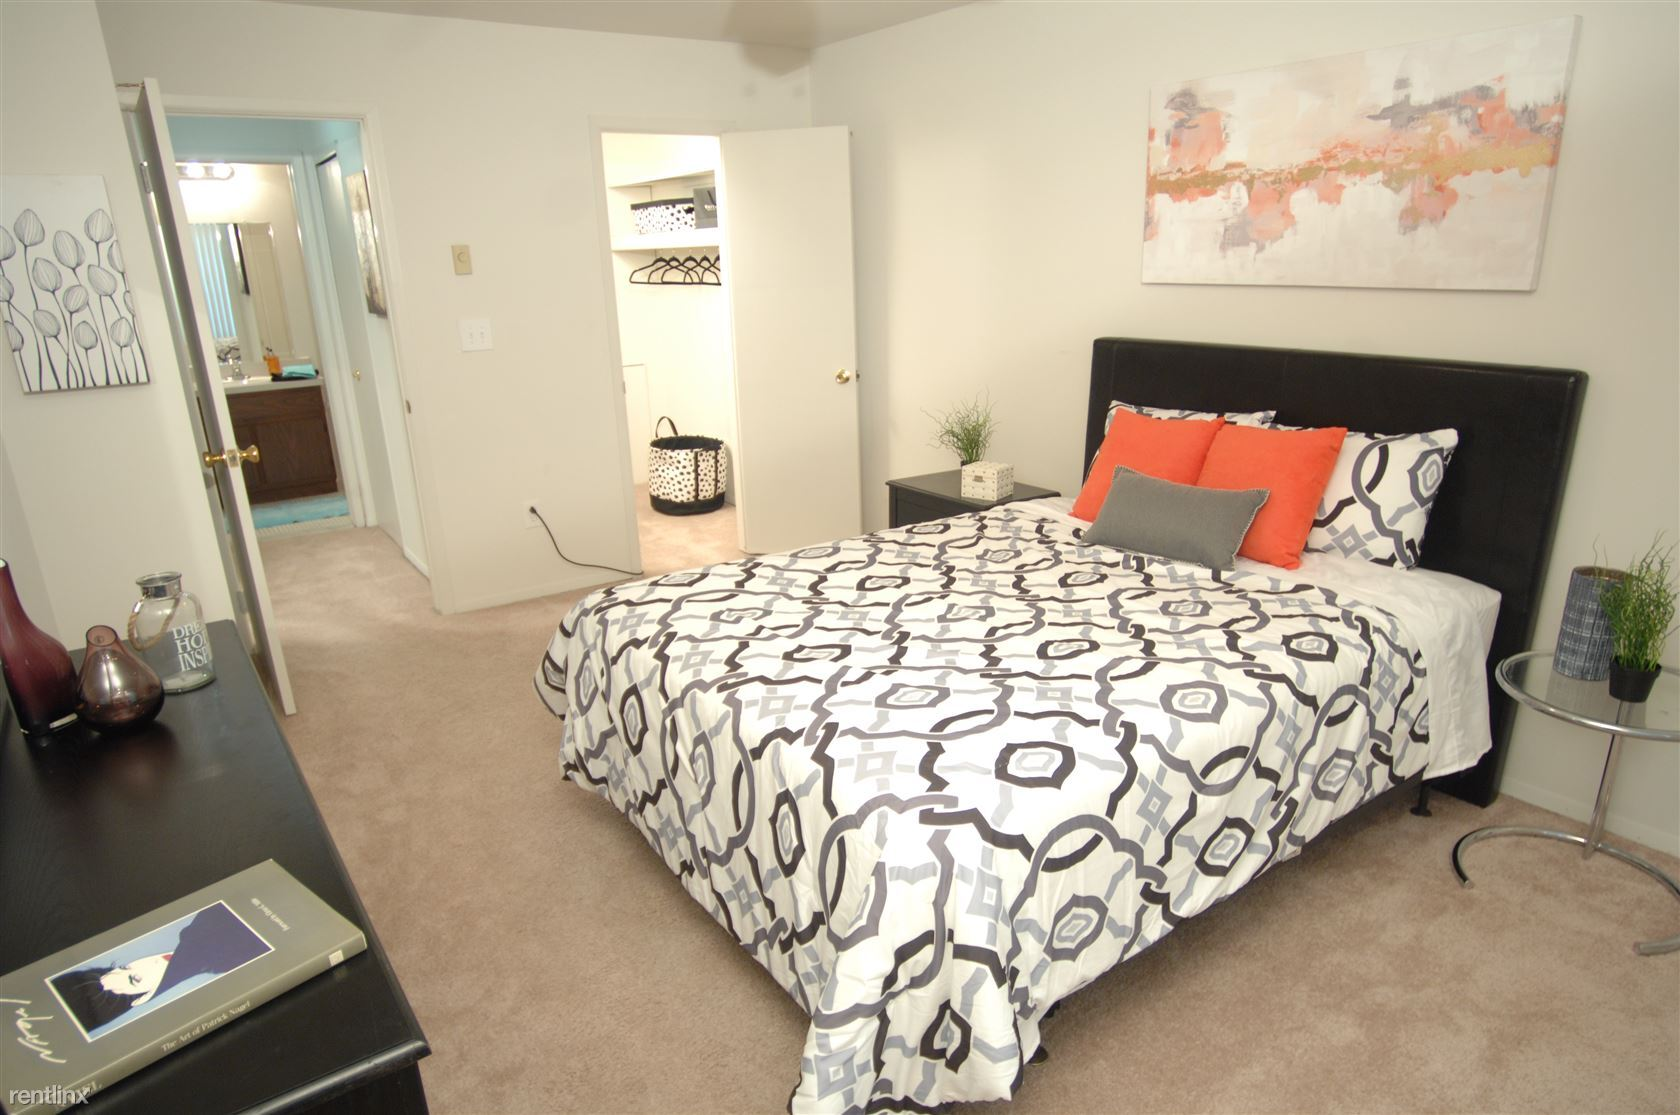 3 Bedroom Apartments In Southfield Mi Chatsford Village Apartments Oakland Community College